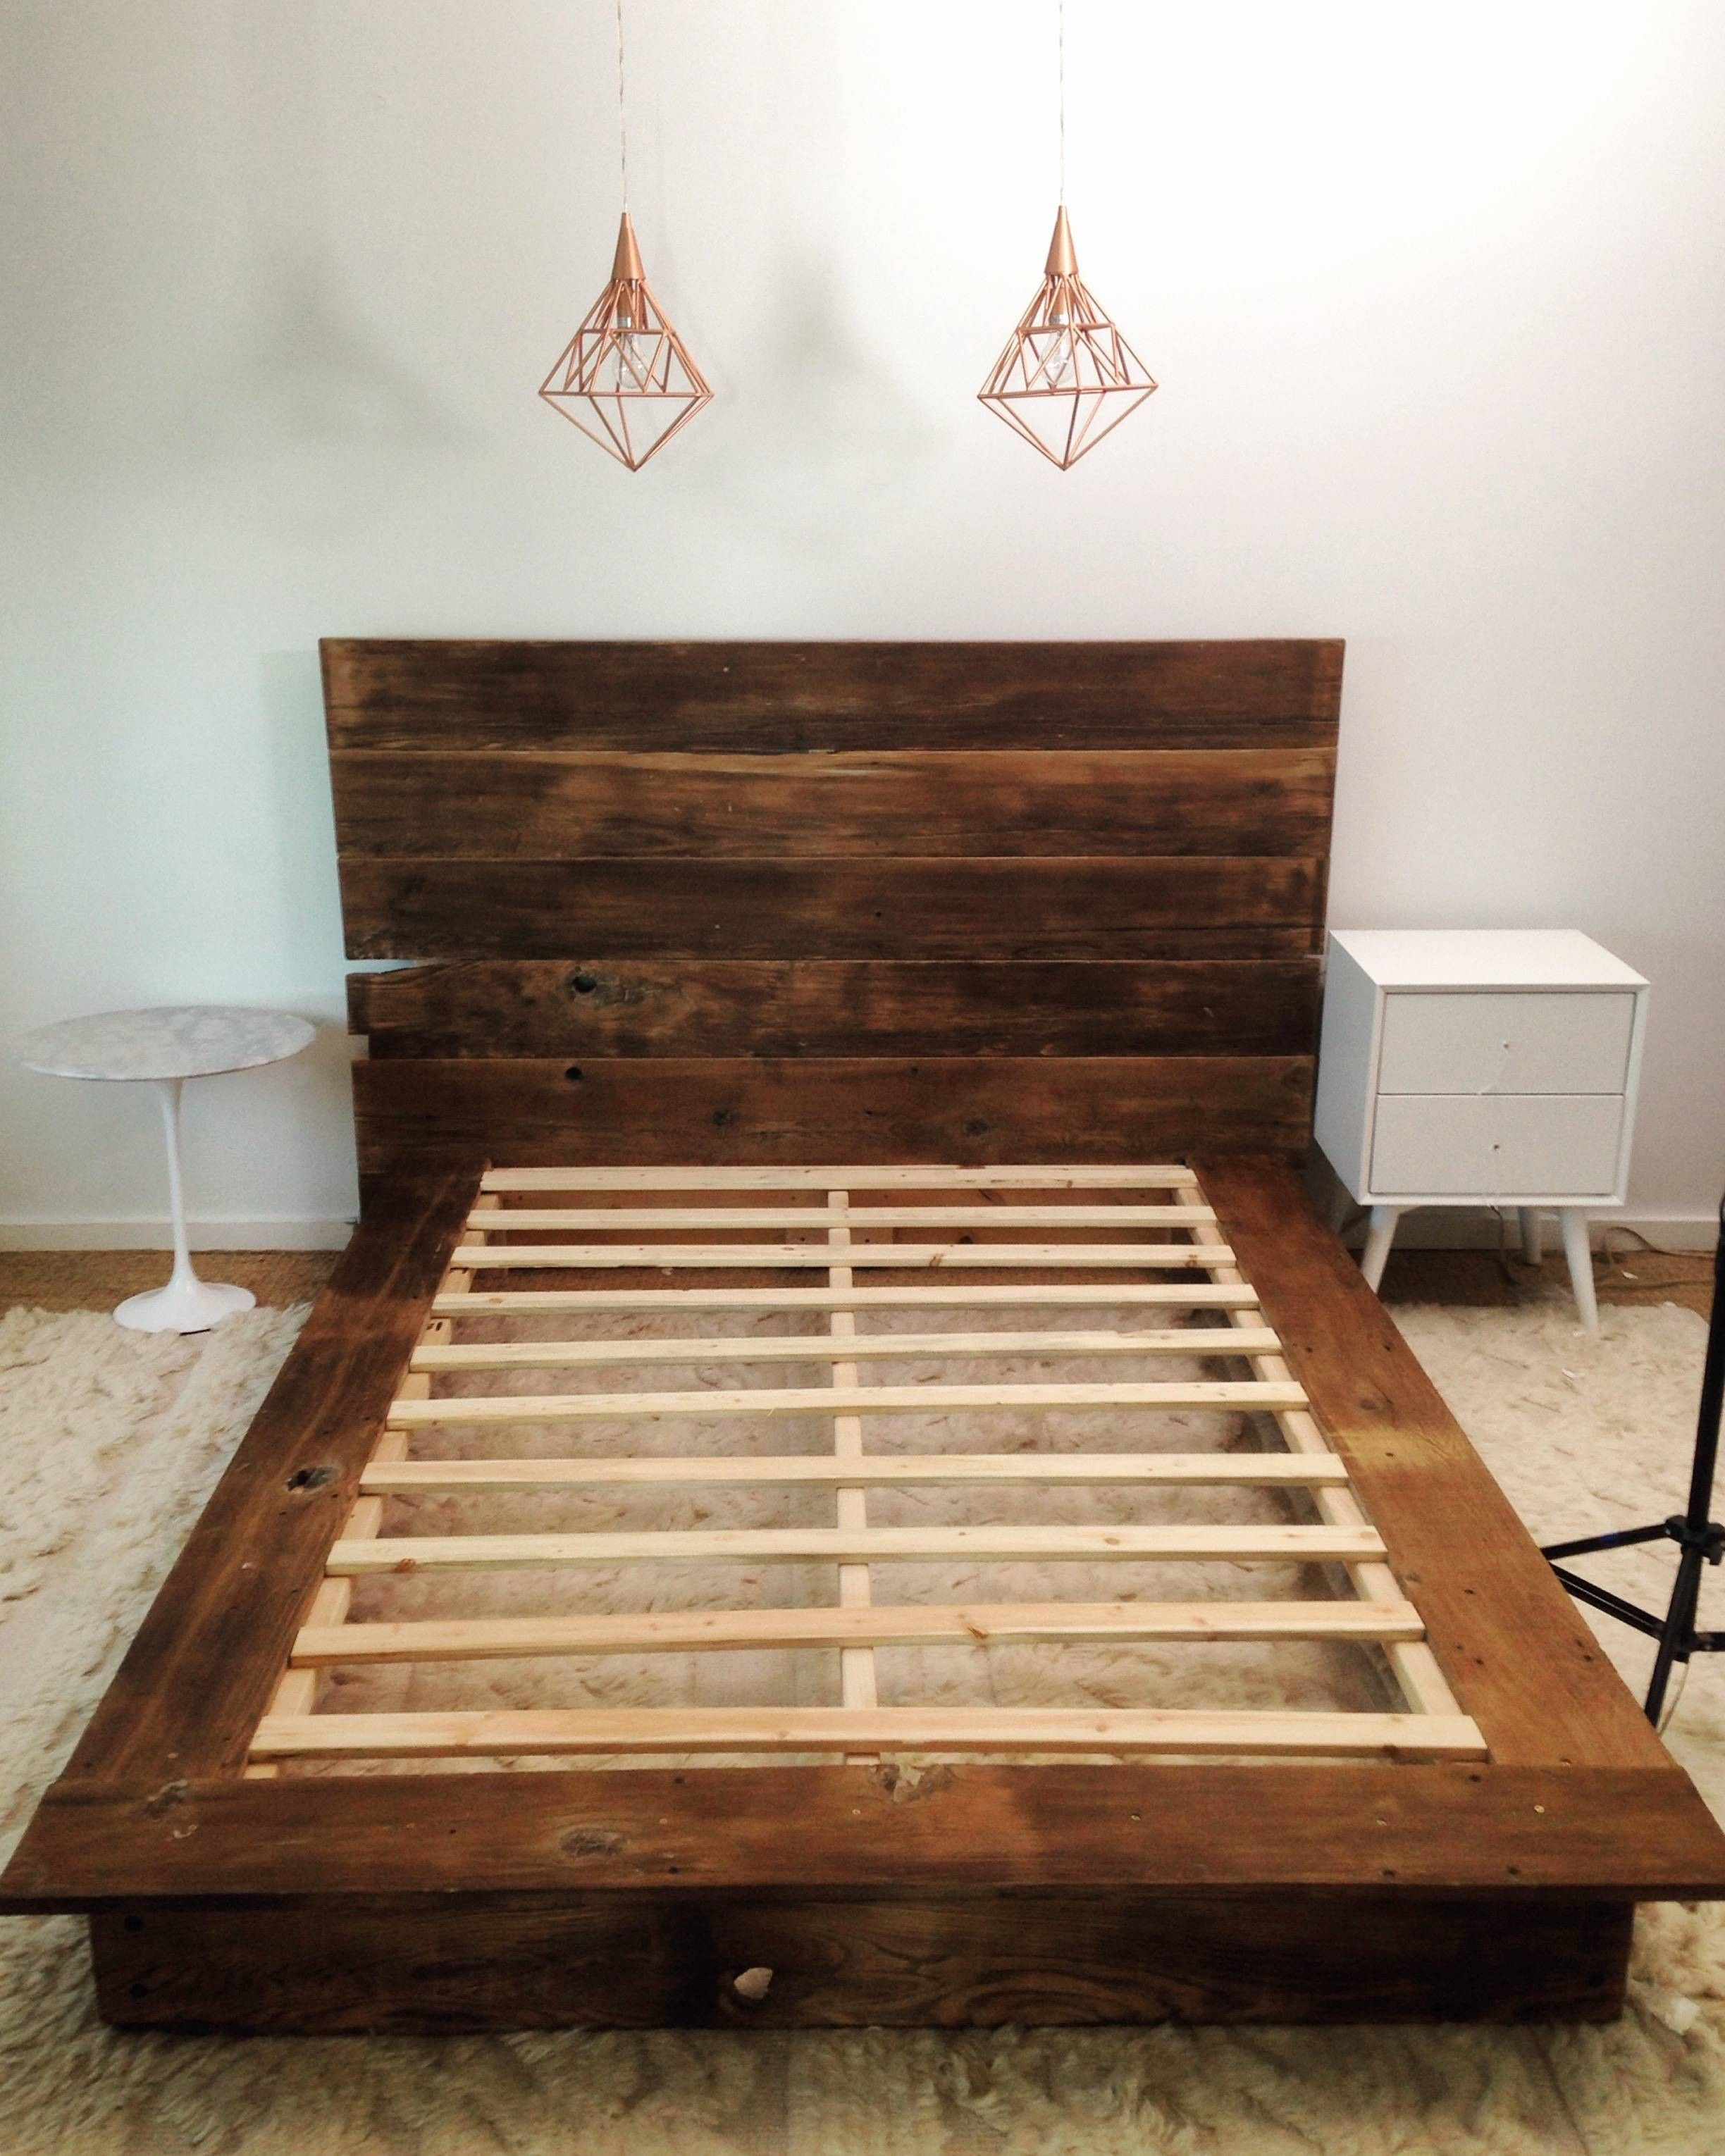 75 Cool Photography Of Bed Frames For A King Size Bed Diy